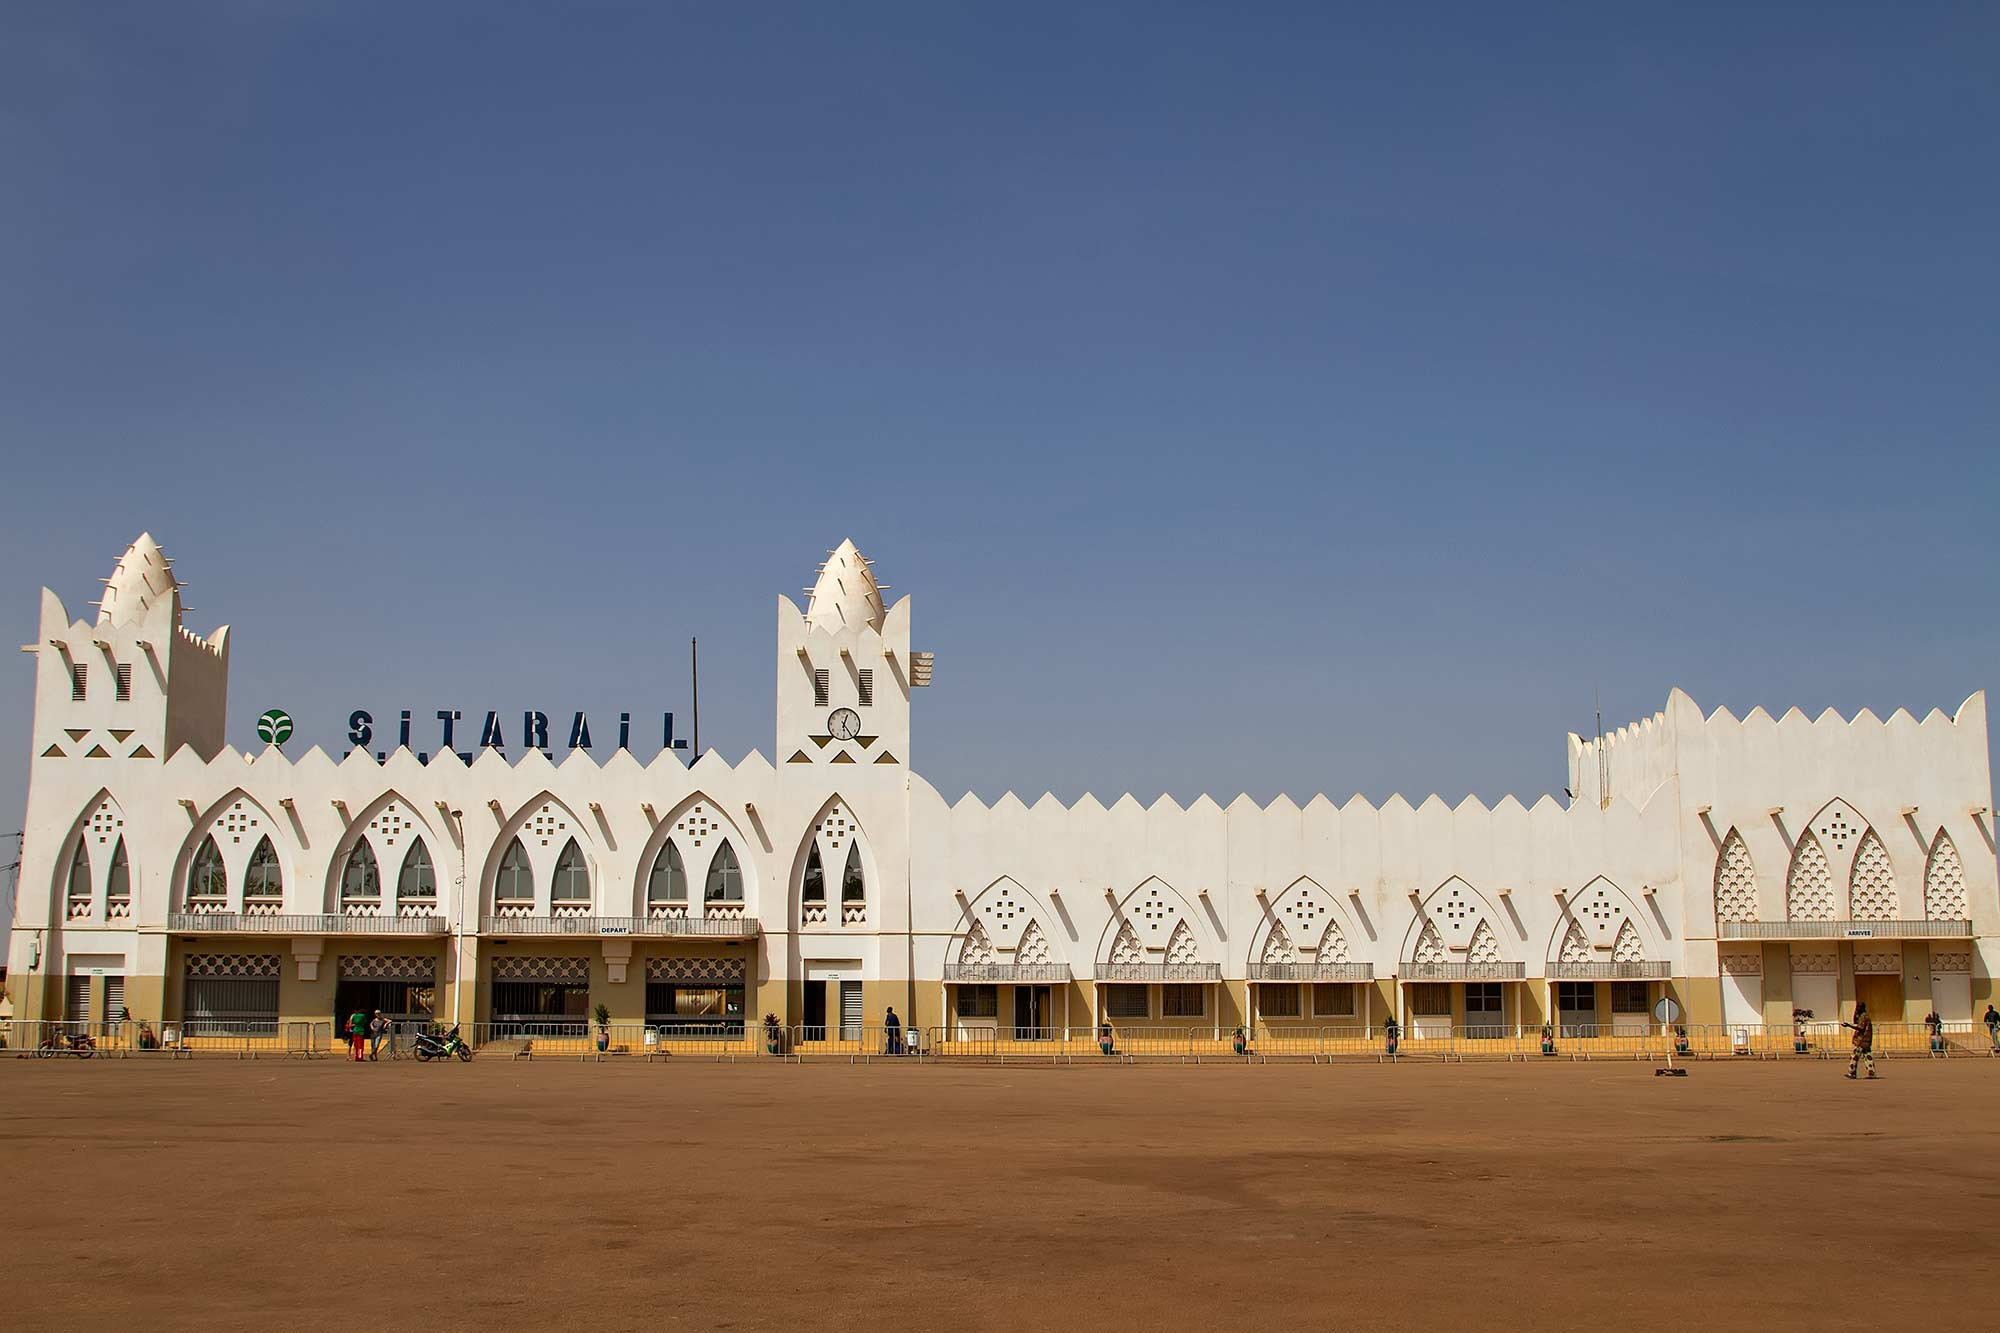 sitarail-train-station-bobodioulasso-burkina-faso